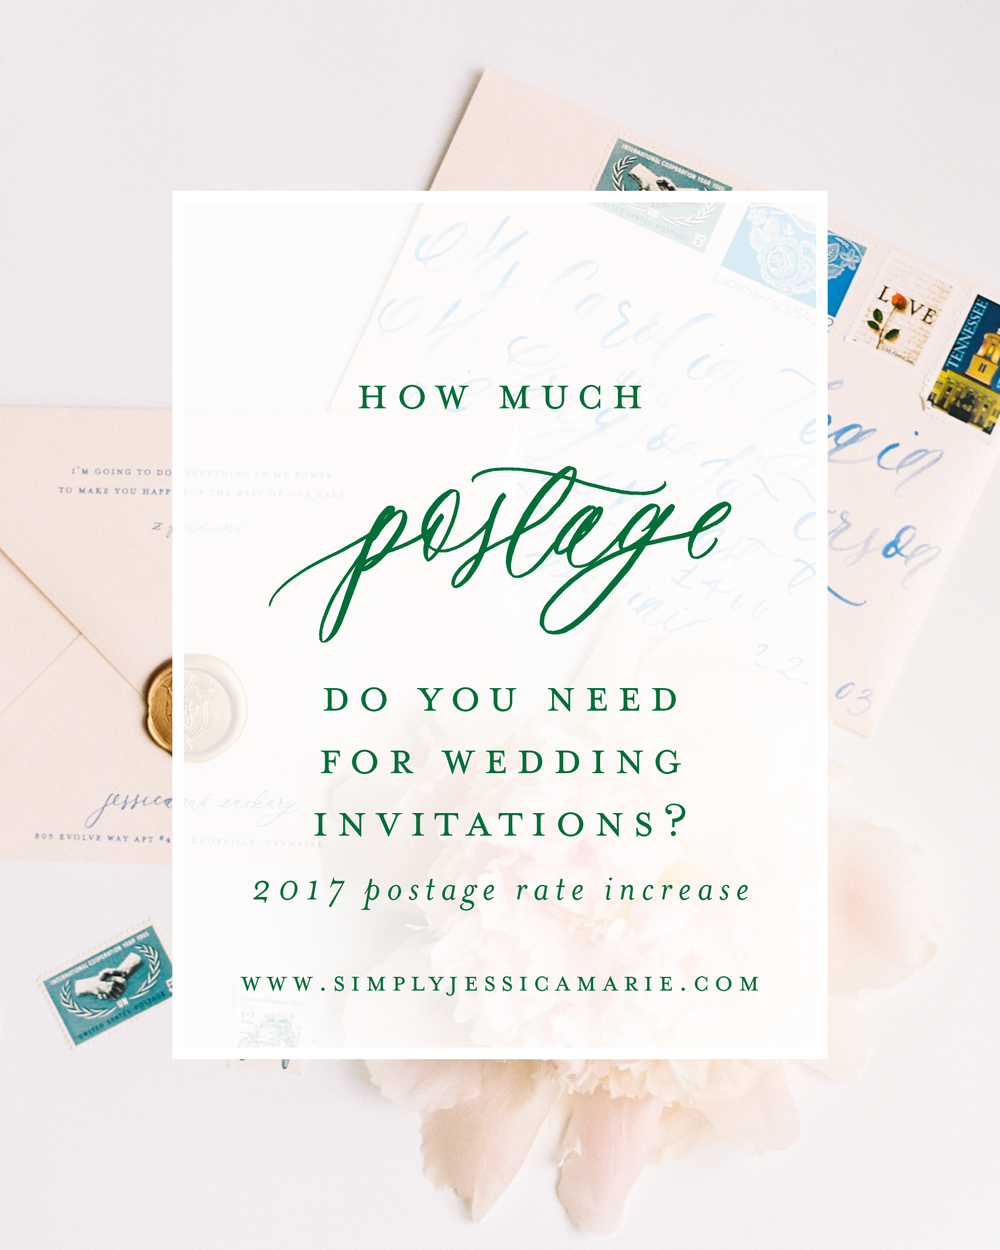 Attractive How Much Postage Do You Need For Wedding Invitations? | Wedding Stationery  Advice From Simply